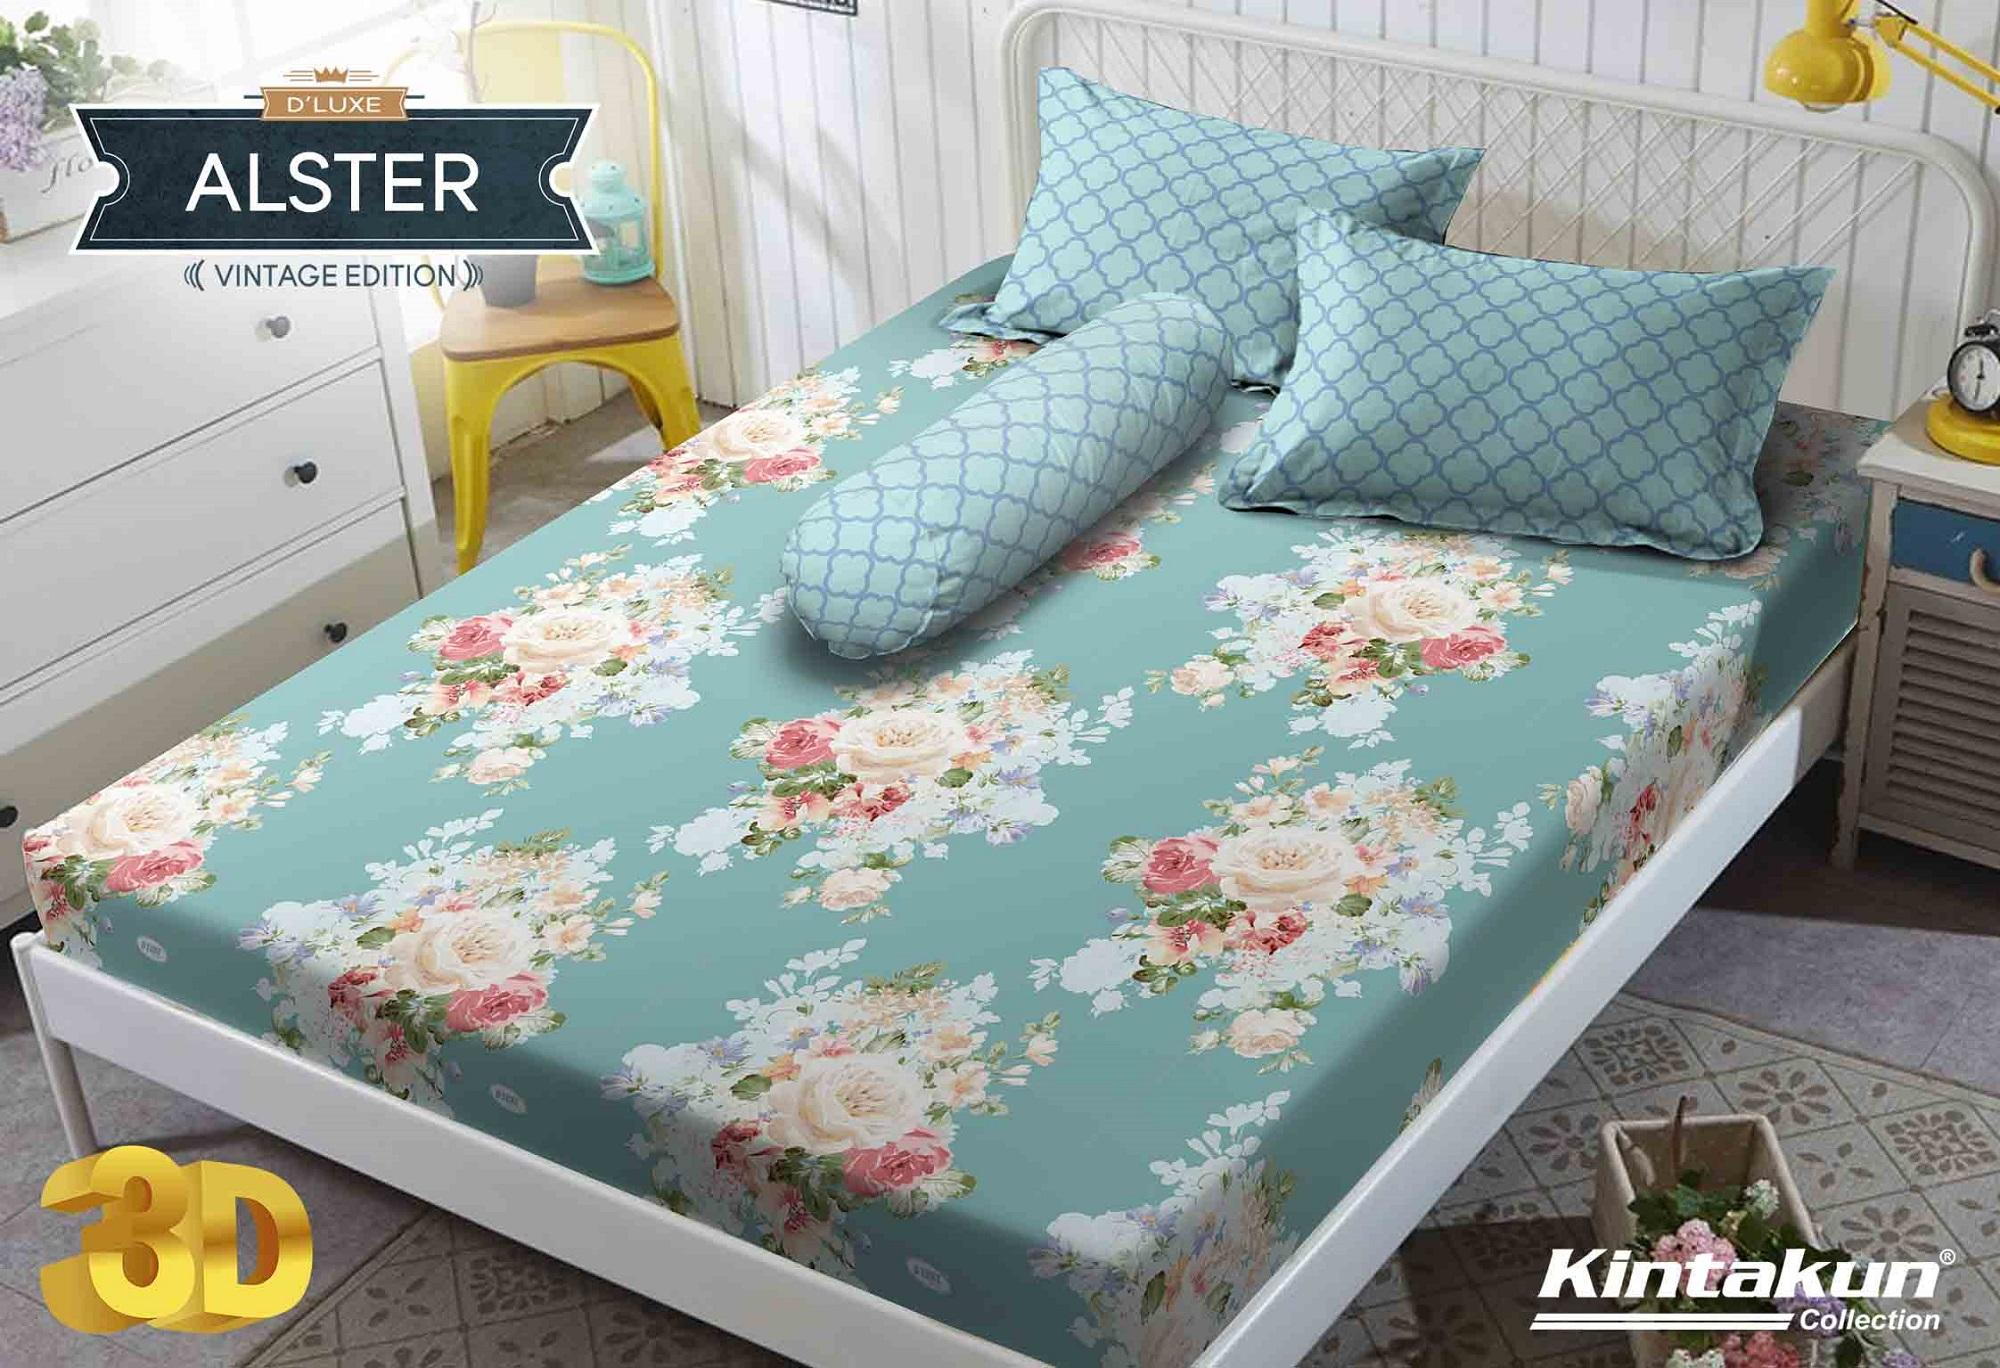 Sprei Kintakun DLuxe Single Size Vintage Edition Uk. 120x200 cm - Alster